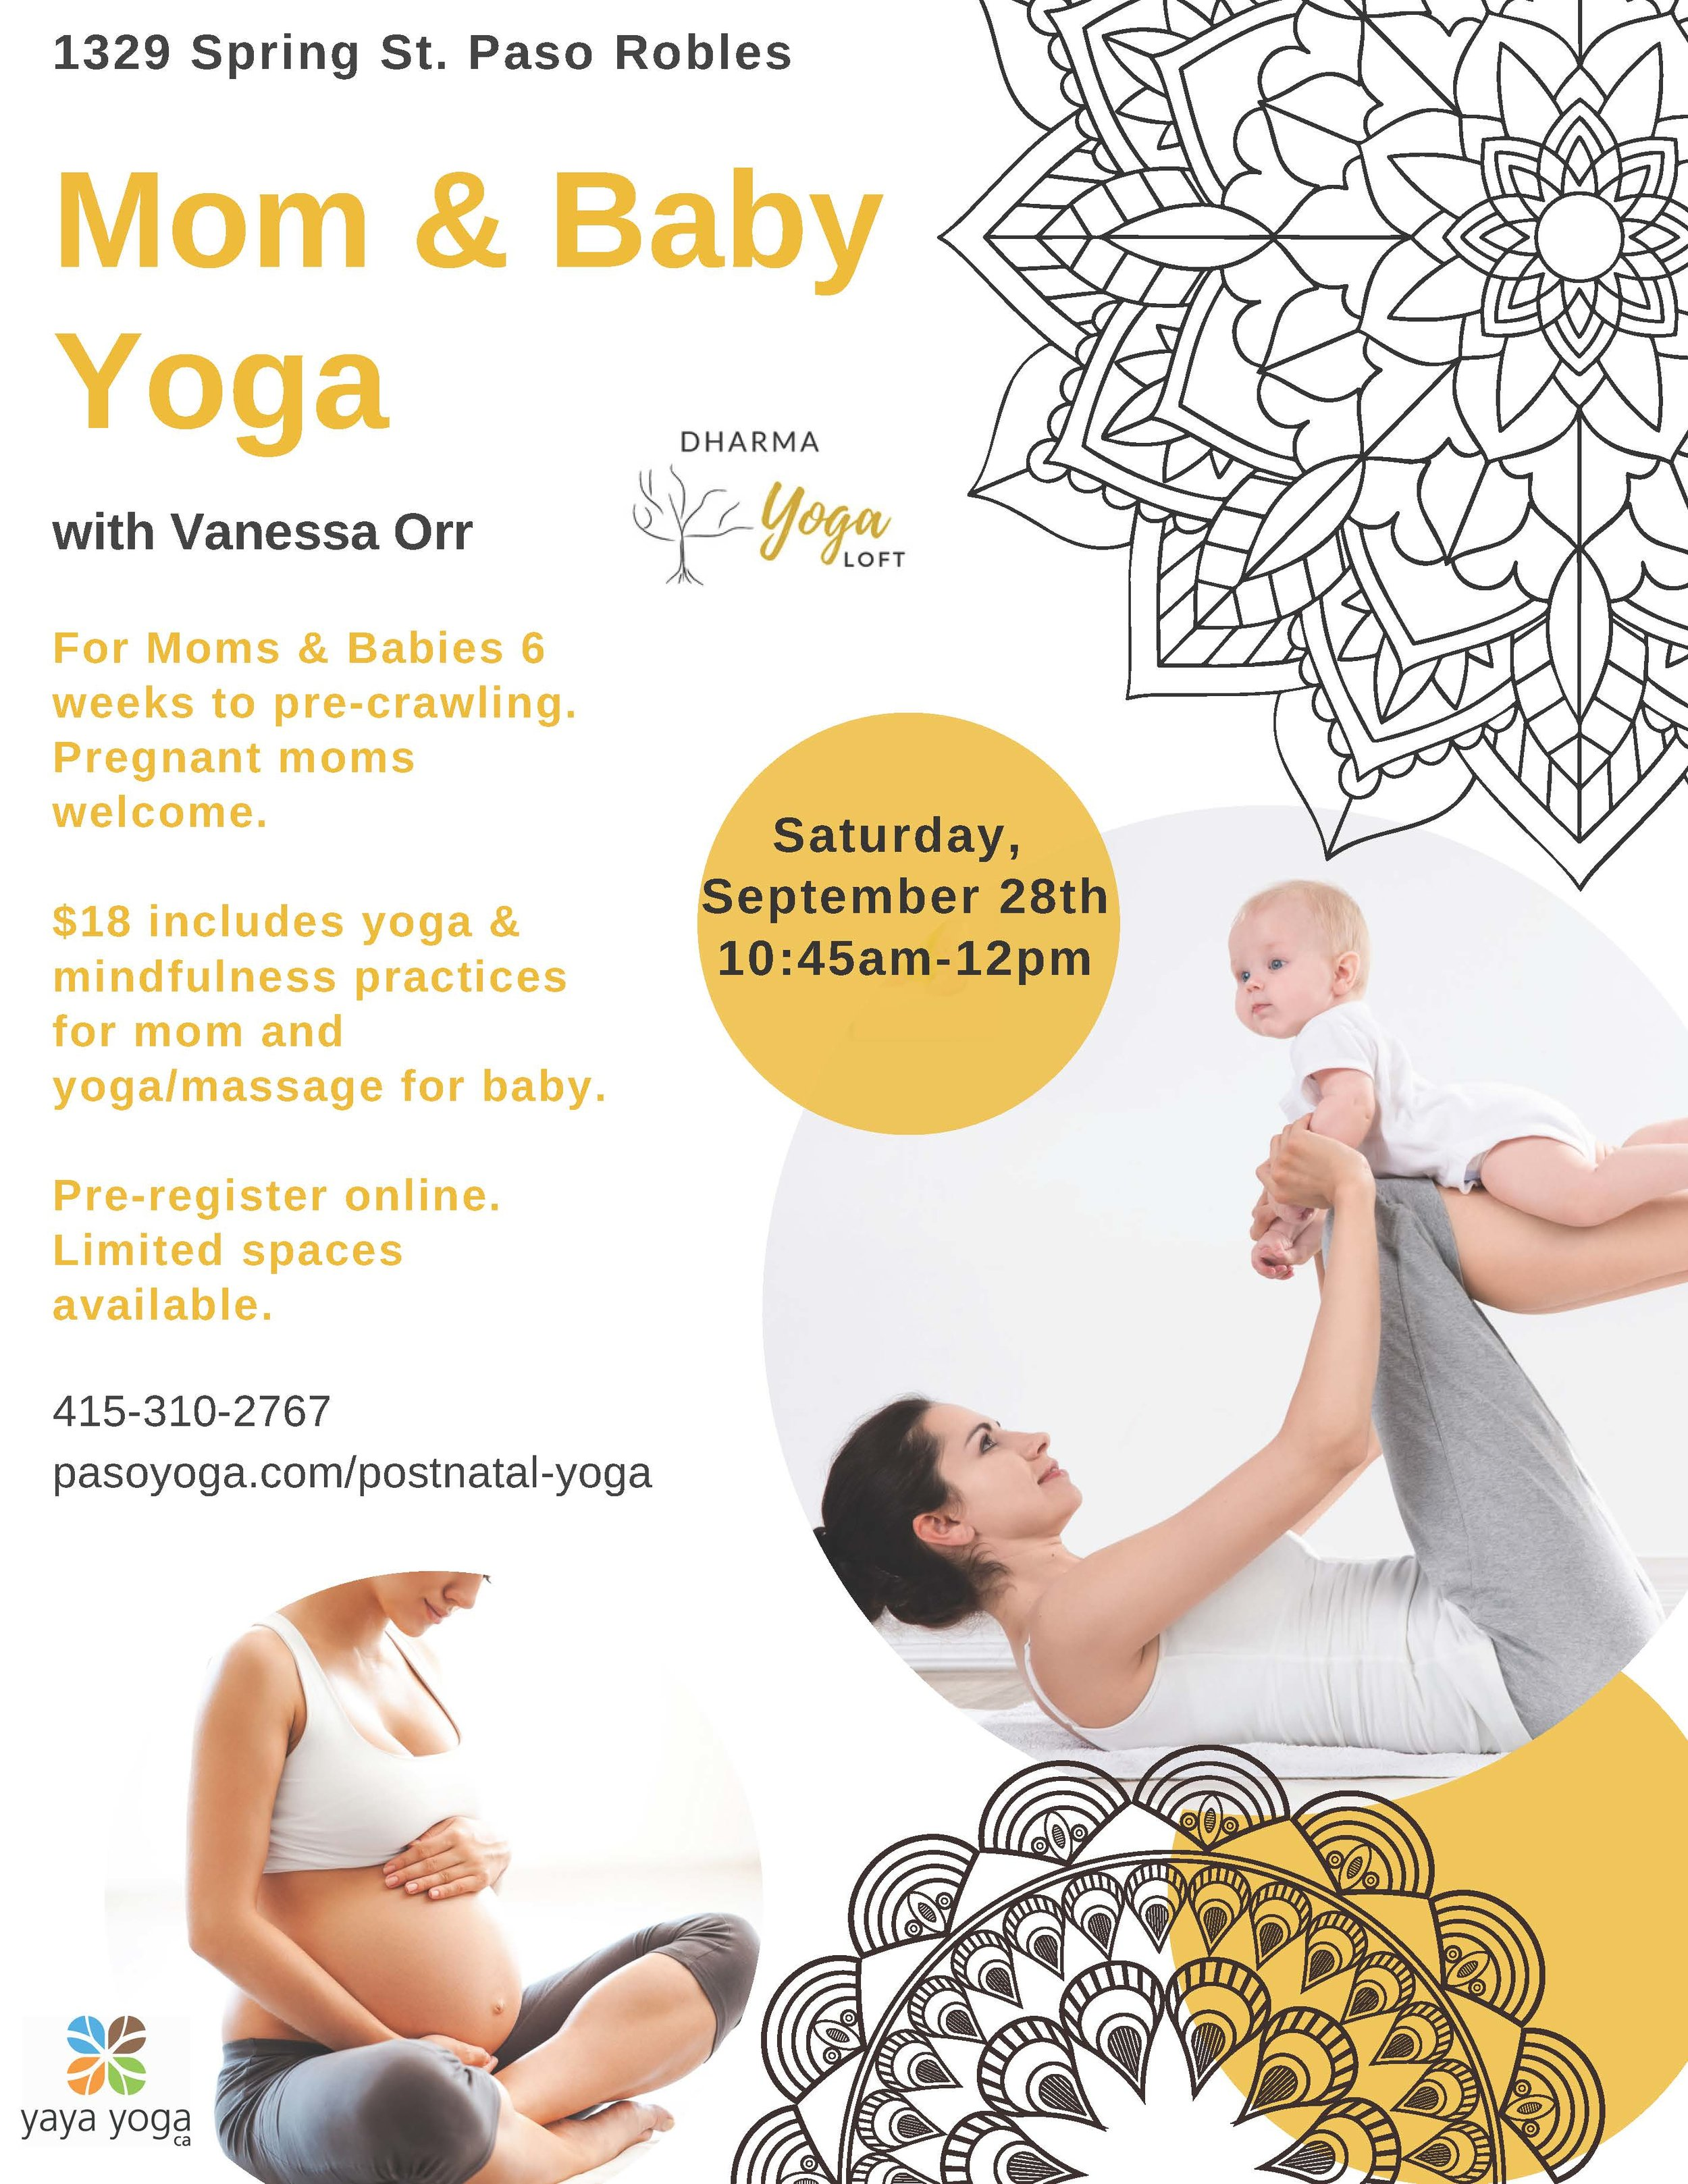 Mom & Baby Yoga - Class is for Moms & babies ages 6 weeks to pre-crawling.Date: Saturday,September 28thTime: 10:45am-12:00pmPrice: Drop-in $18**Space is limited.Pre-registration coming soon!